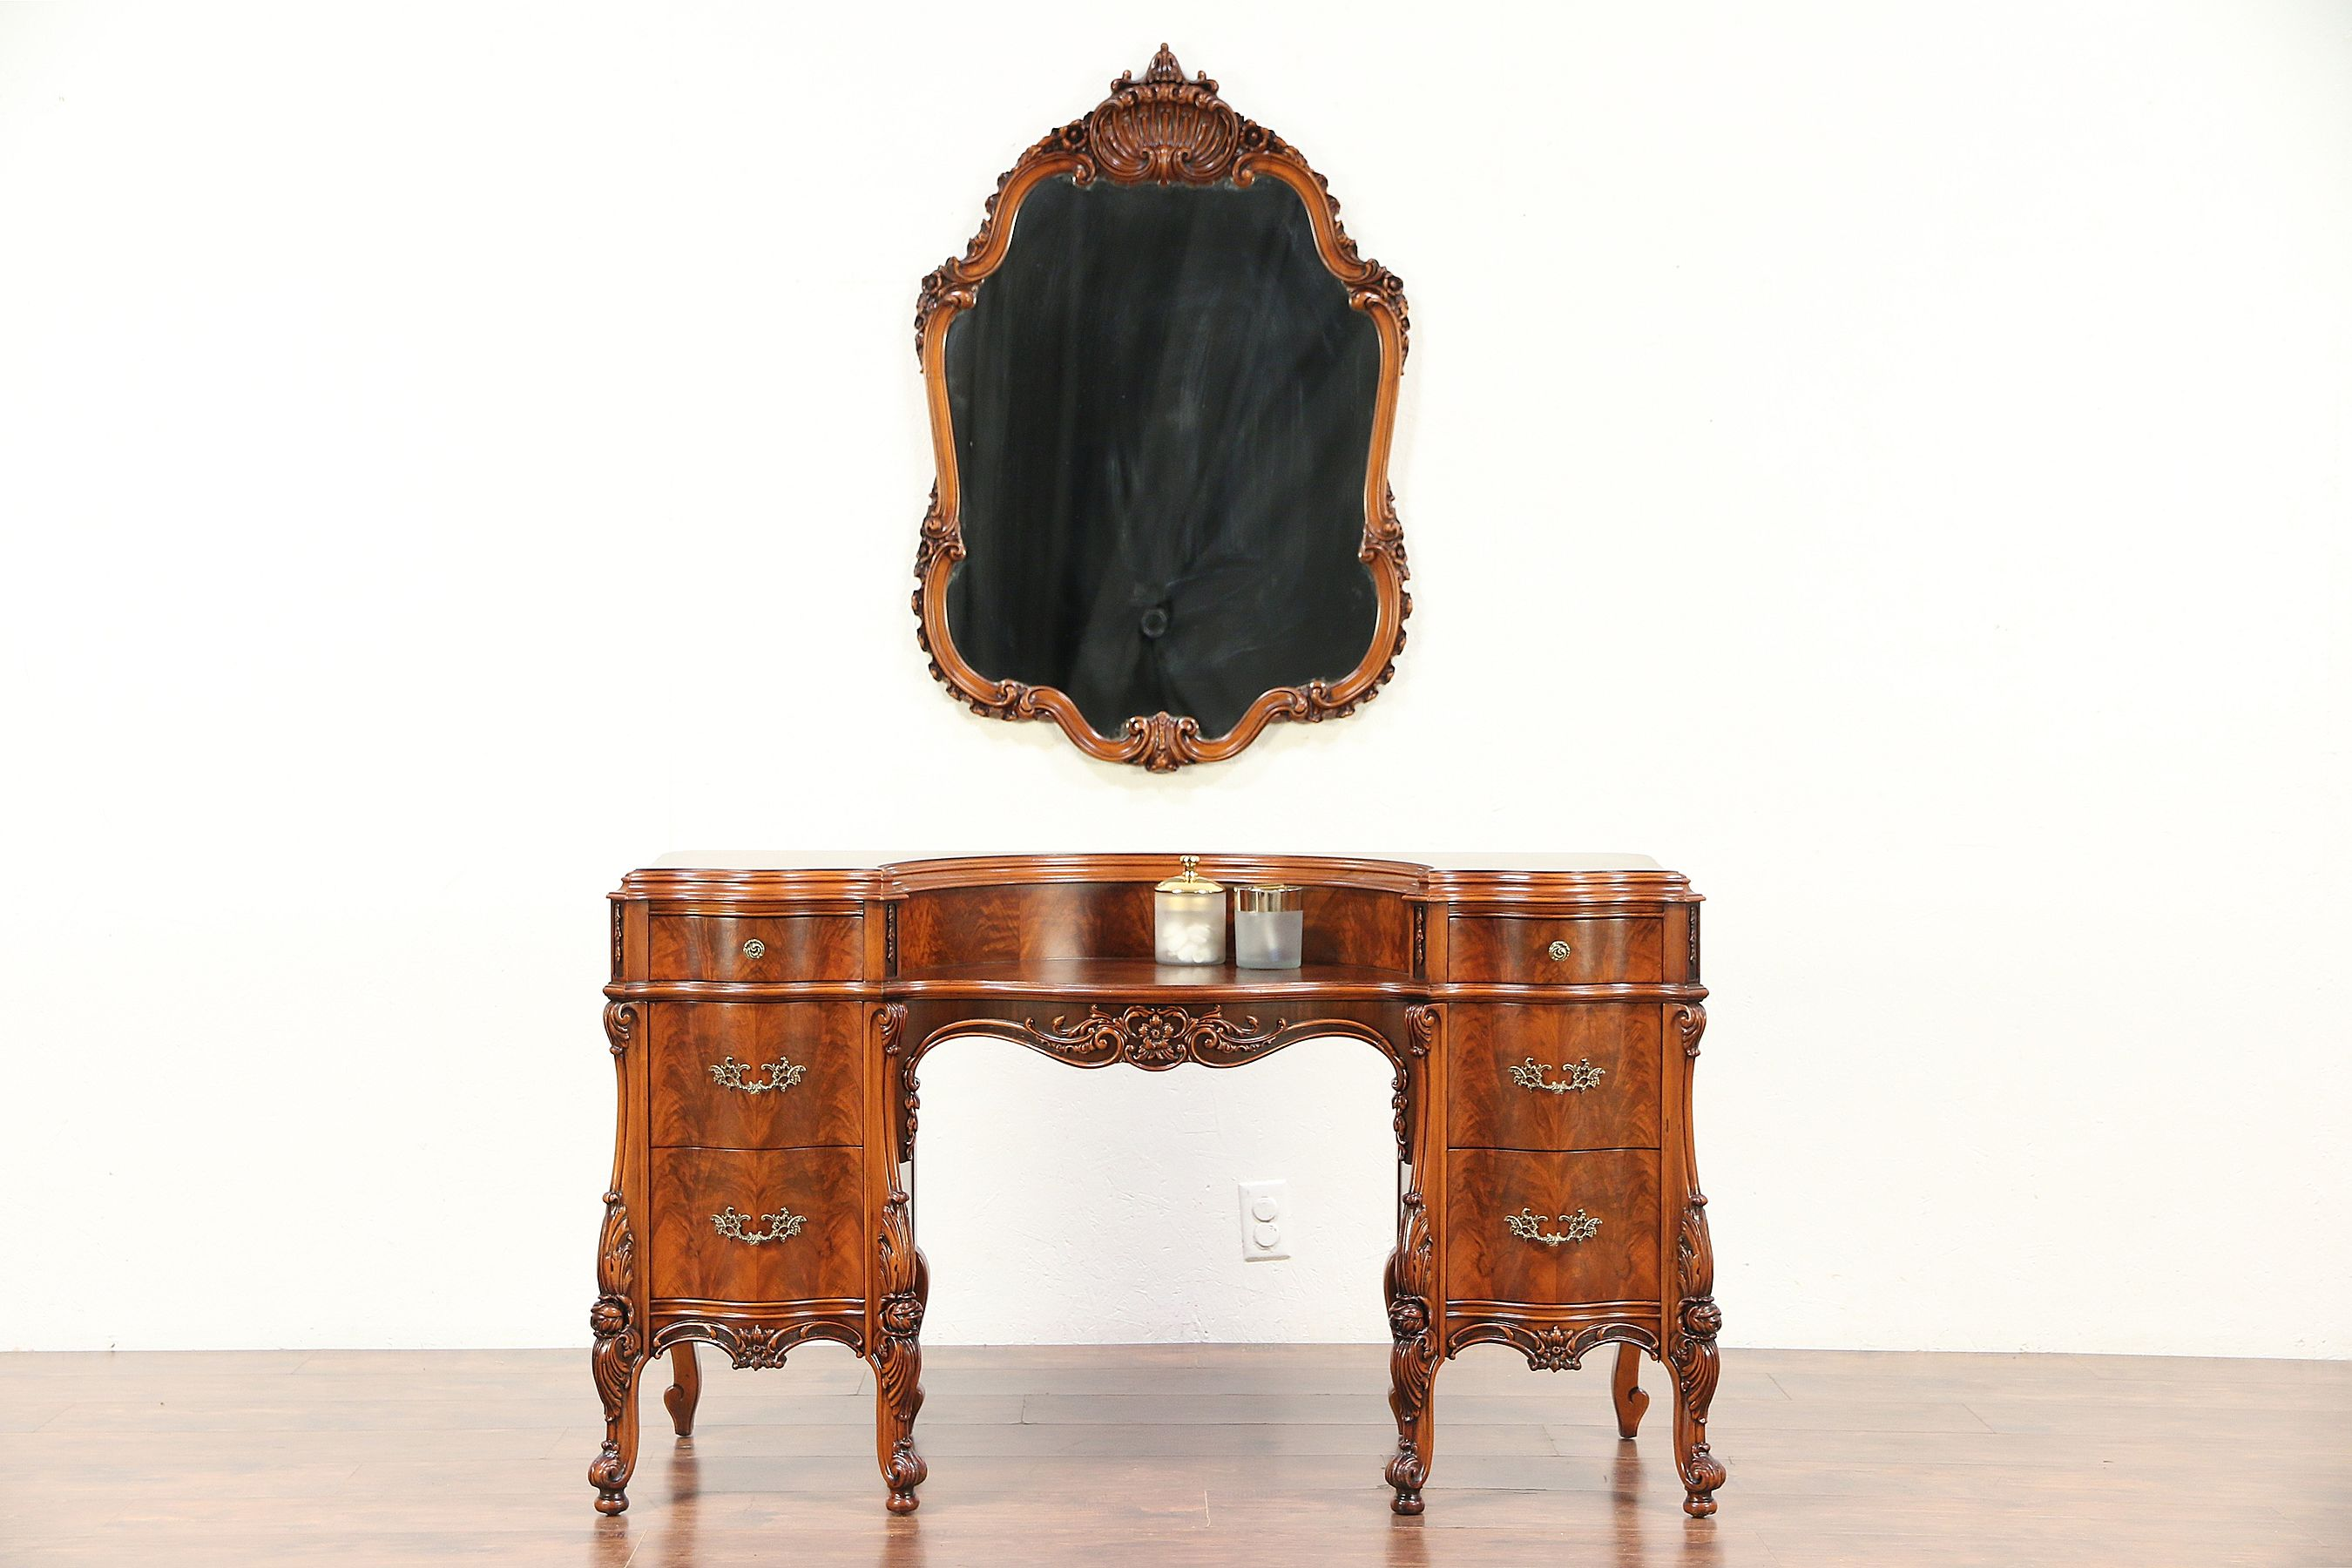 French Style Antique Carved Vanity Or Dressing Table U0026 Wall Mirror #29580  Photo